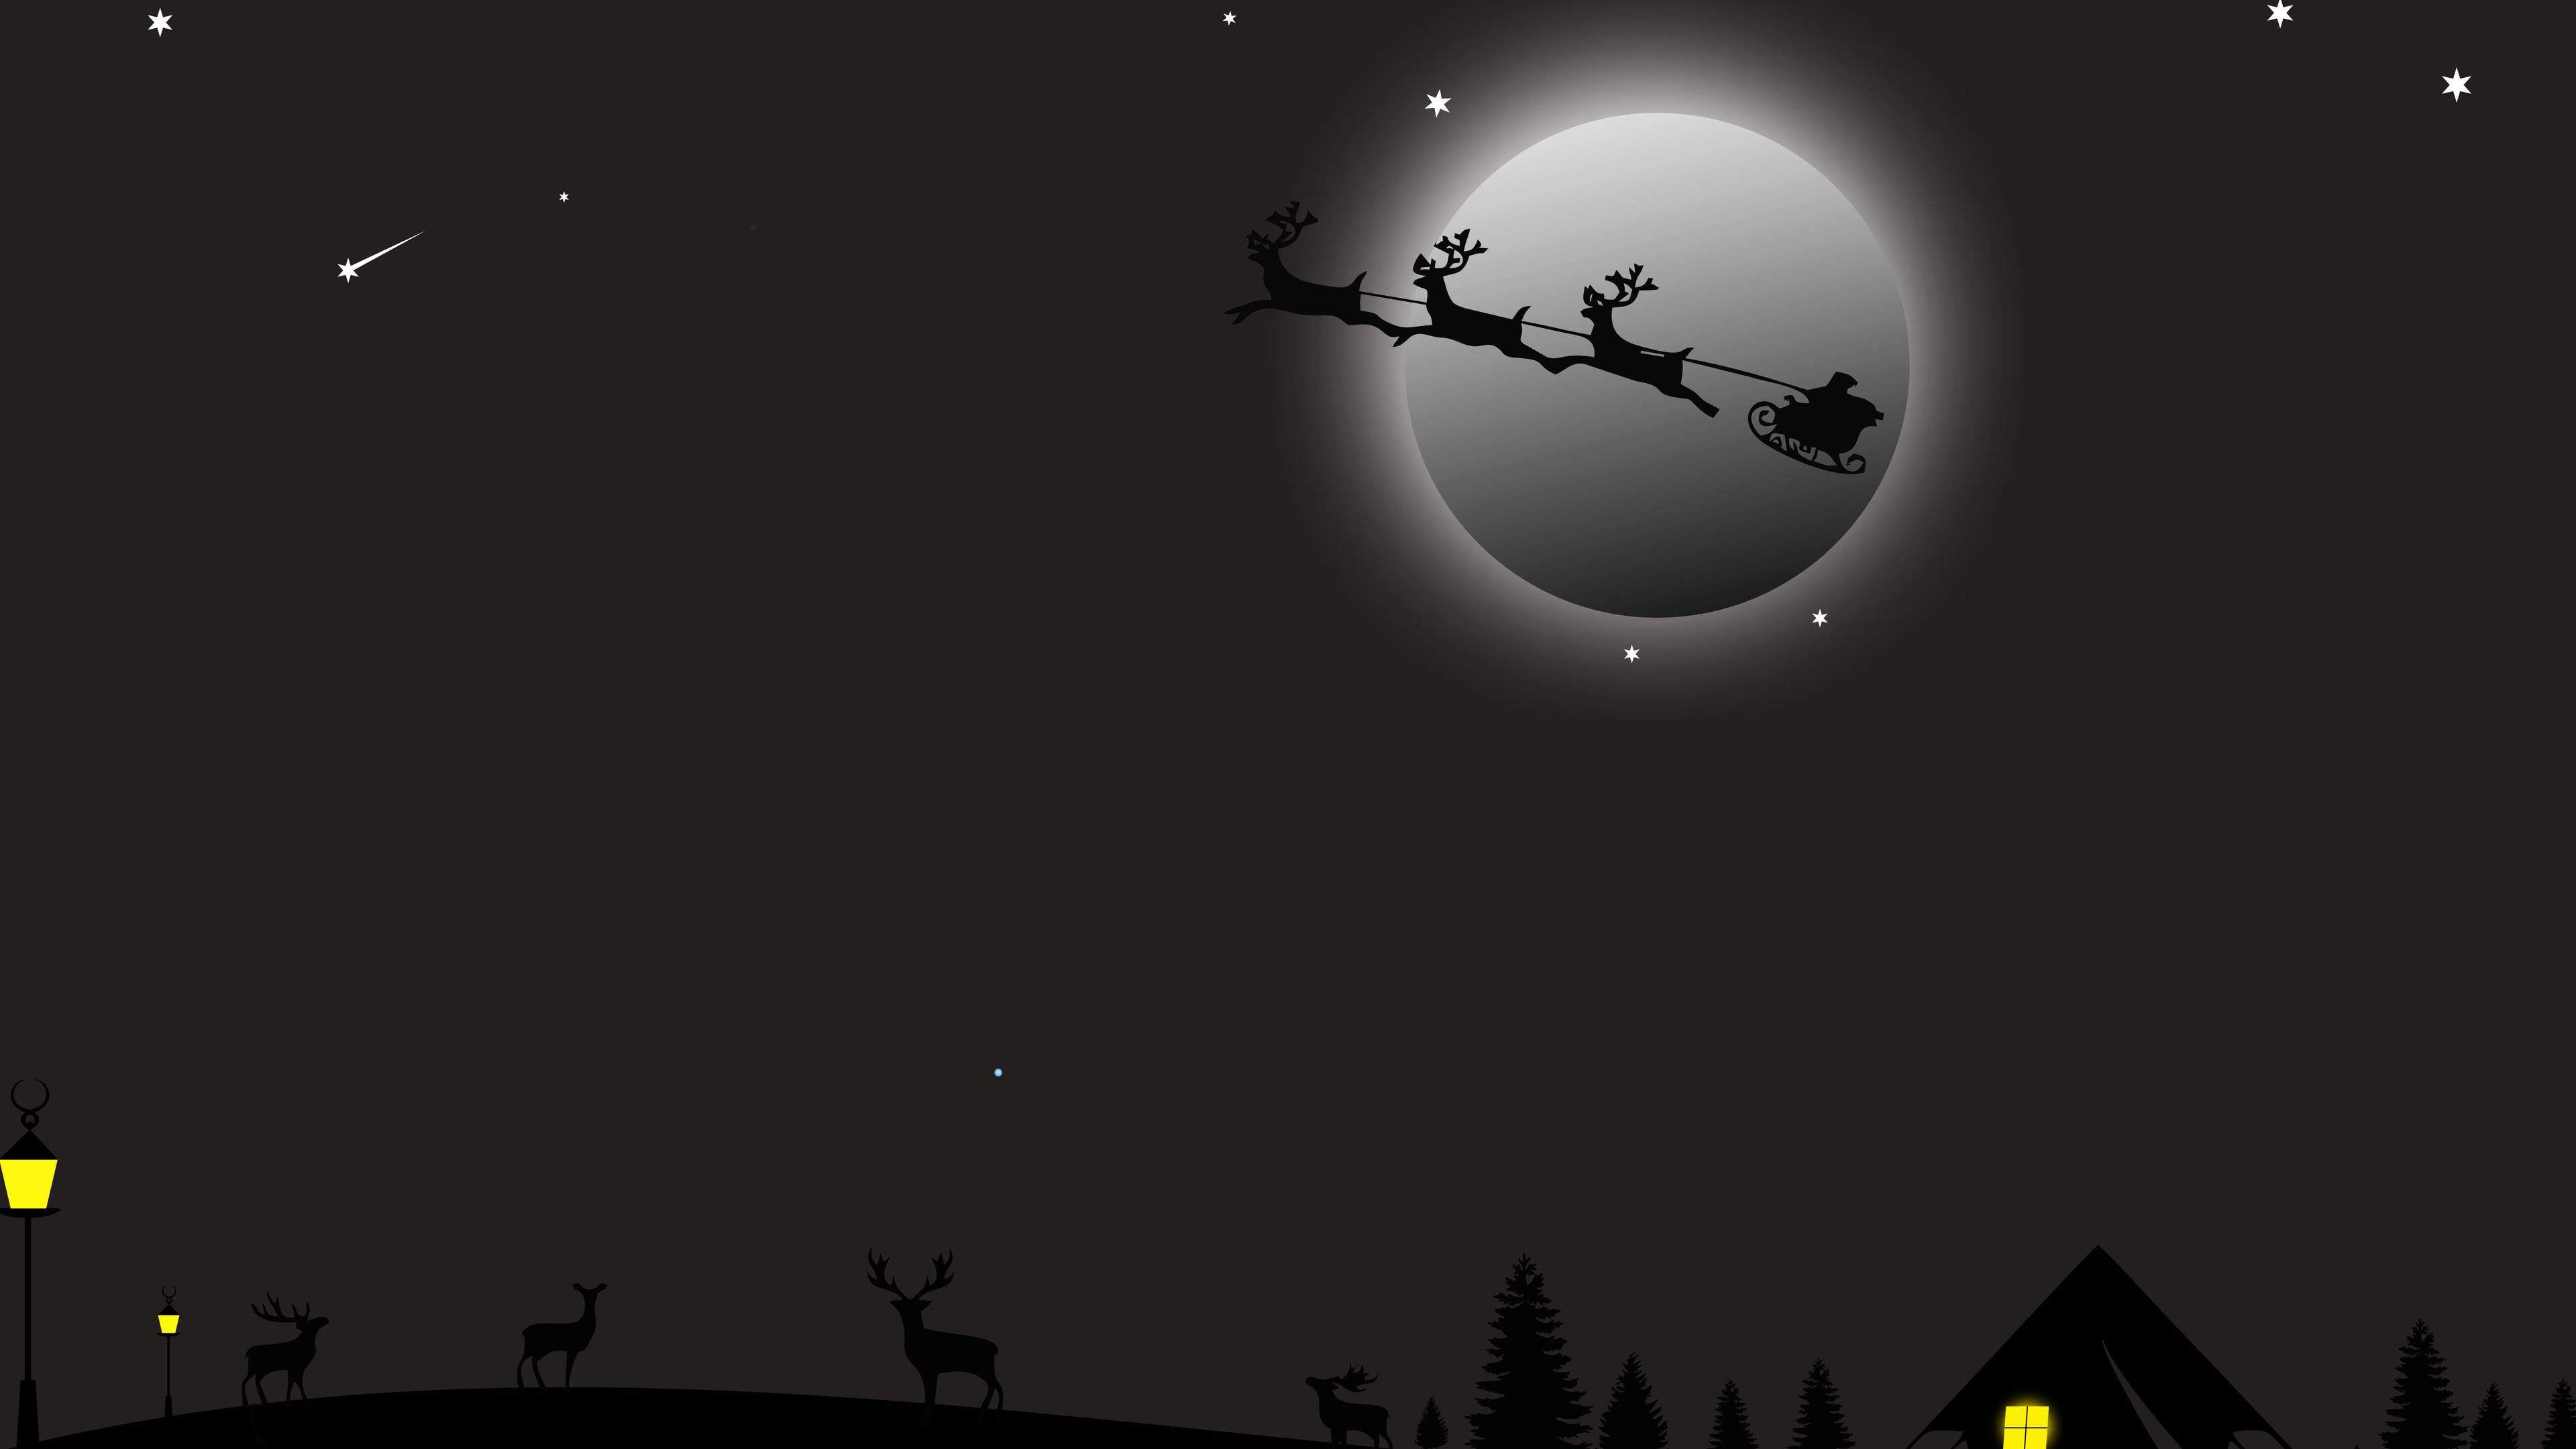 santa claus deer ride 4k 1551642531 - Santa Claus Deer Ride 4k - santa claus wallpapers, monochrome wallpapers, hd-wallpapers, deer wallpapers, christmas wallpapers, celebrations wallpapers, black and white wallpapers, 5k wallpapers, 4k-wallpapers